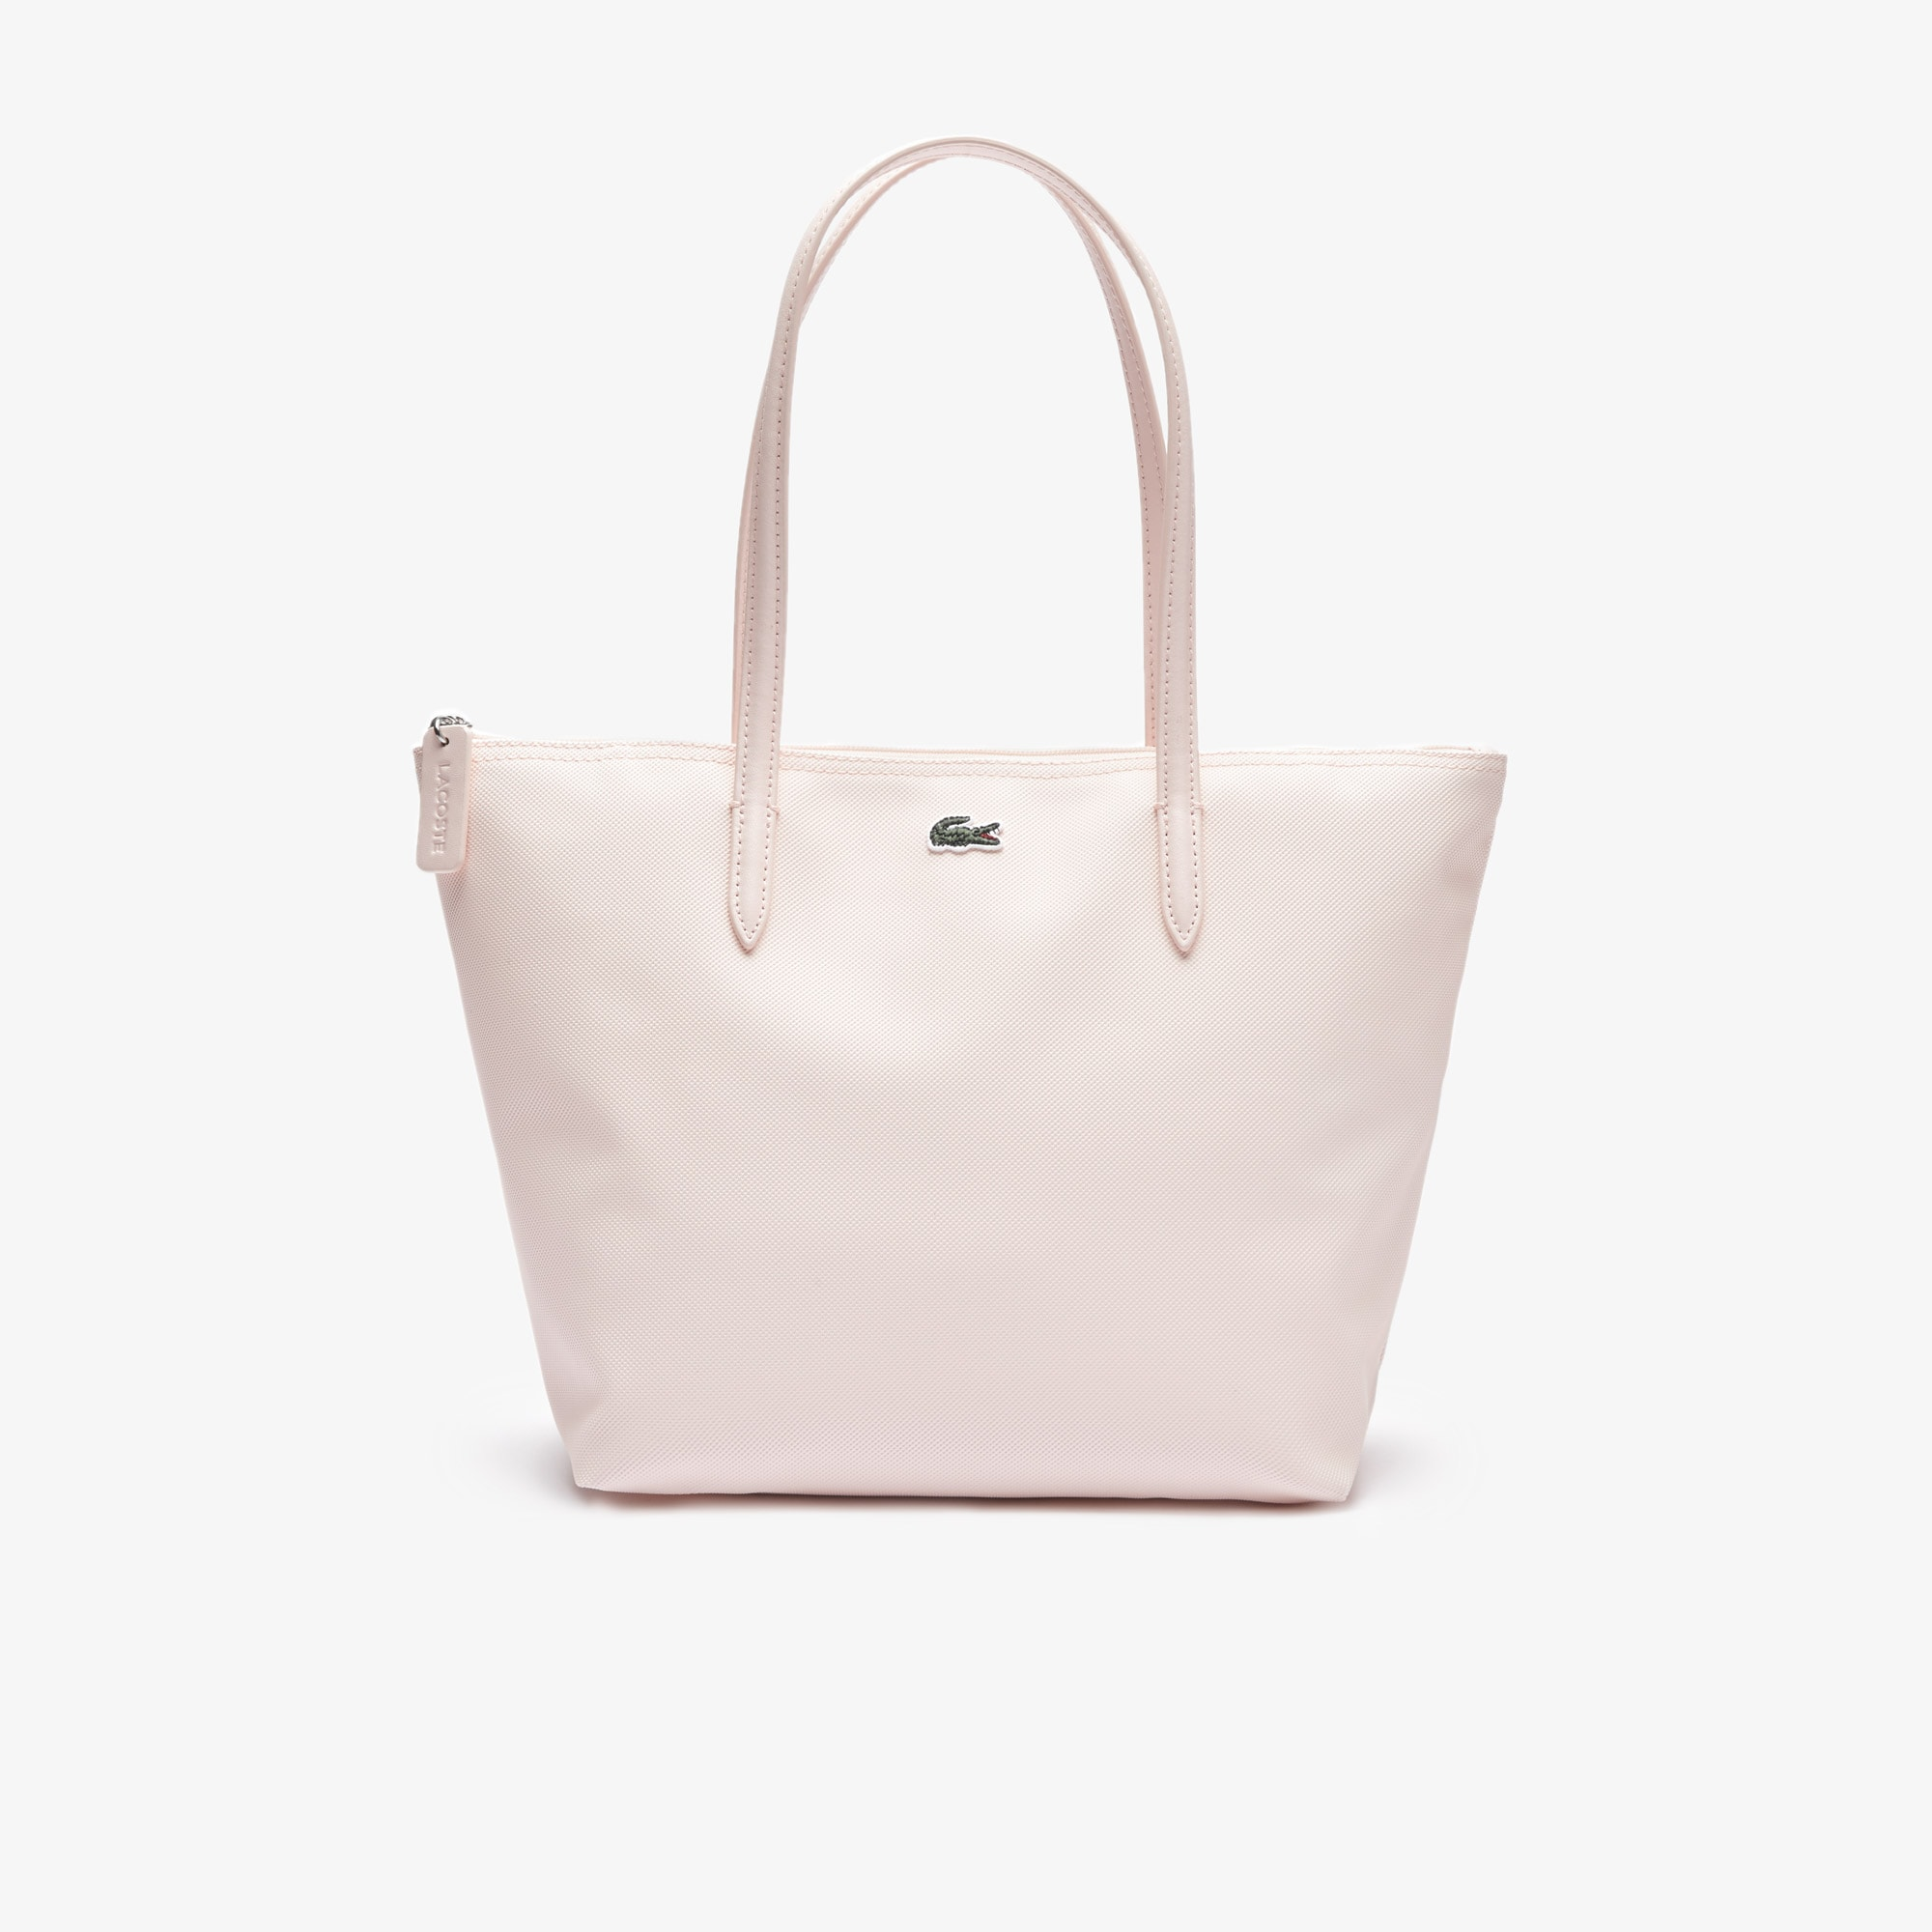 Main Lacoste Tclkf13j À Femme Cuircabasmaroquinerie Sacs Bgf7y6yv zSUpqVLMG